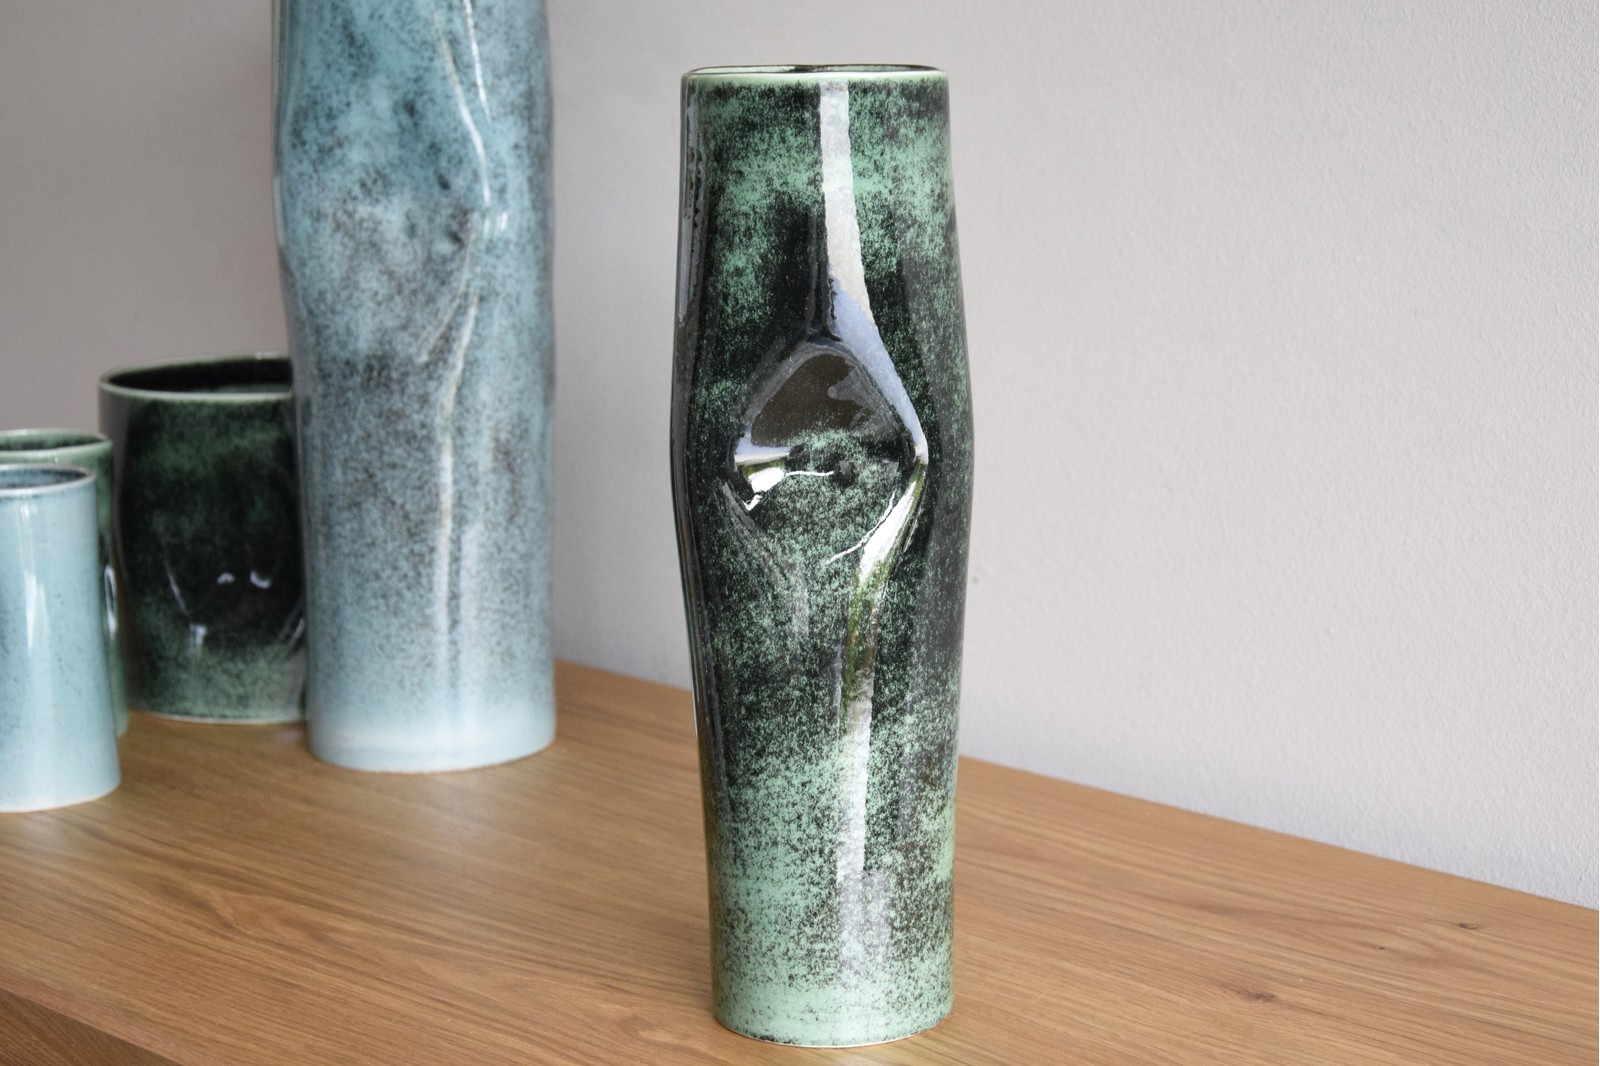 ALBERCA COLLECTION: CERAMIC VASES AND CENTREPIECE